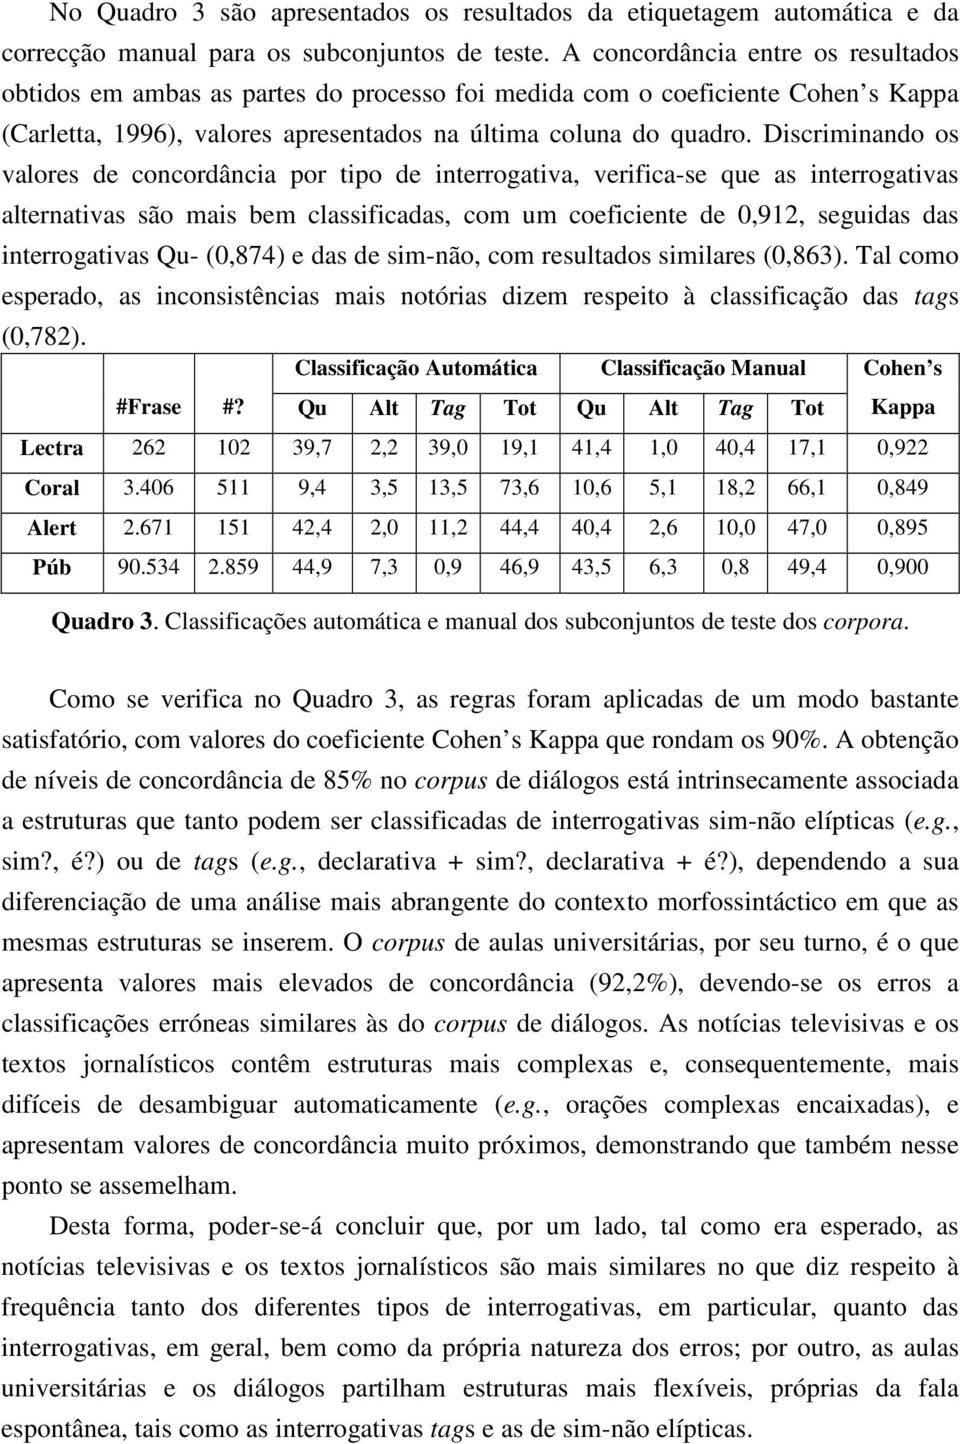 Discriminando os valores de concordância por tipo de interrogativa, verifica-se que as interrogativas alternativas são mais bem classificadas, com um coeficiente de 0,912, seguidas das interrogativas